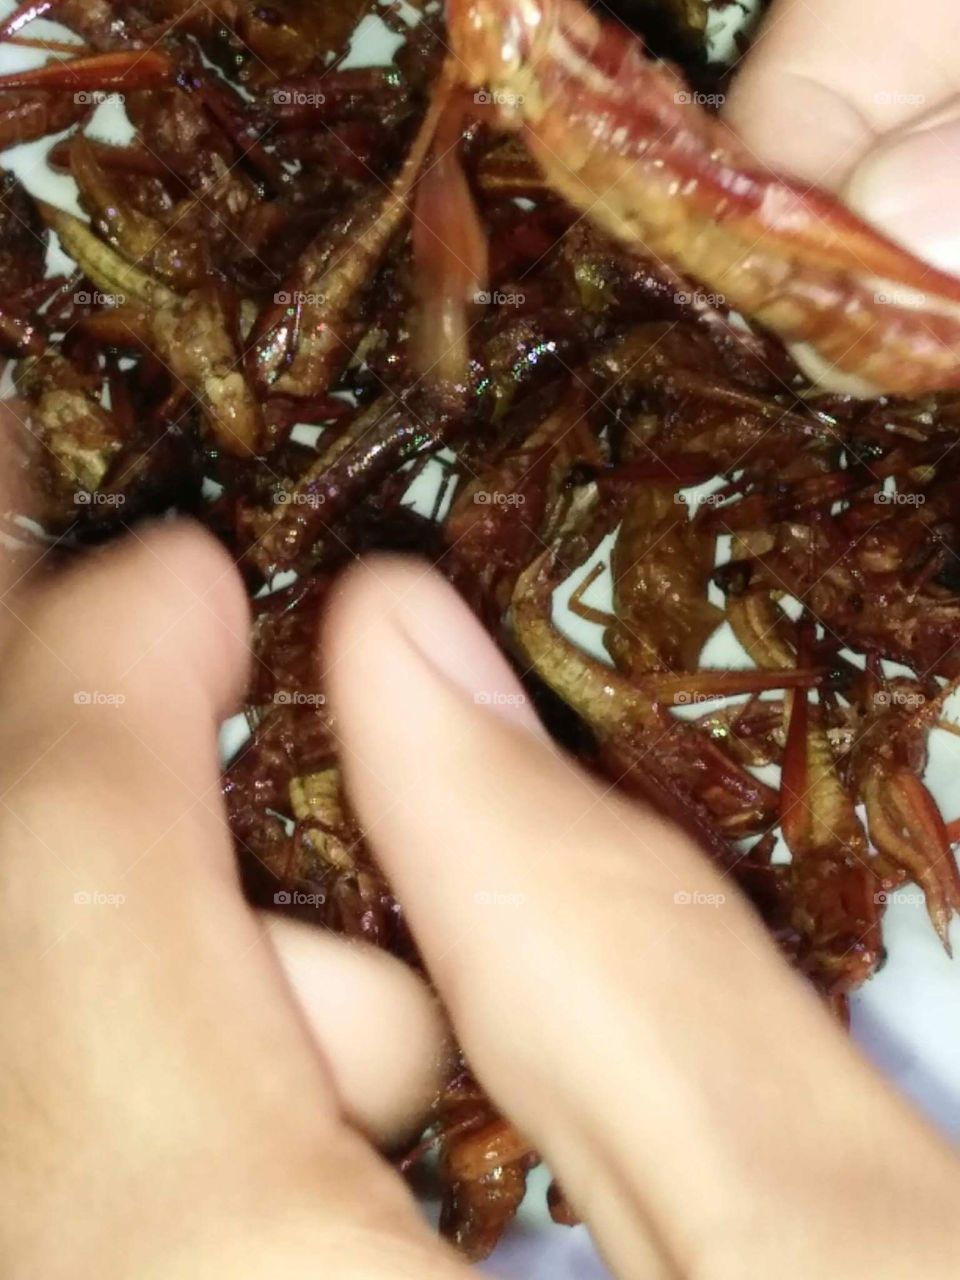 A cook grasshopper  one of other native food of native people of my country!!!!